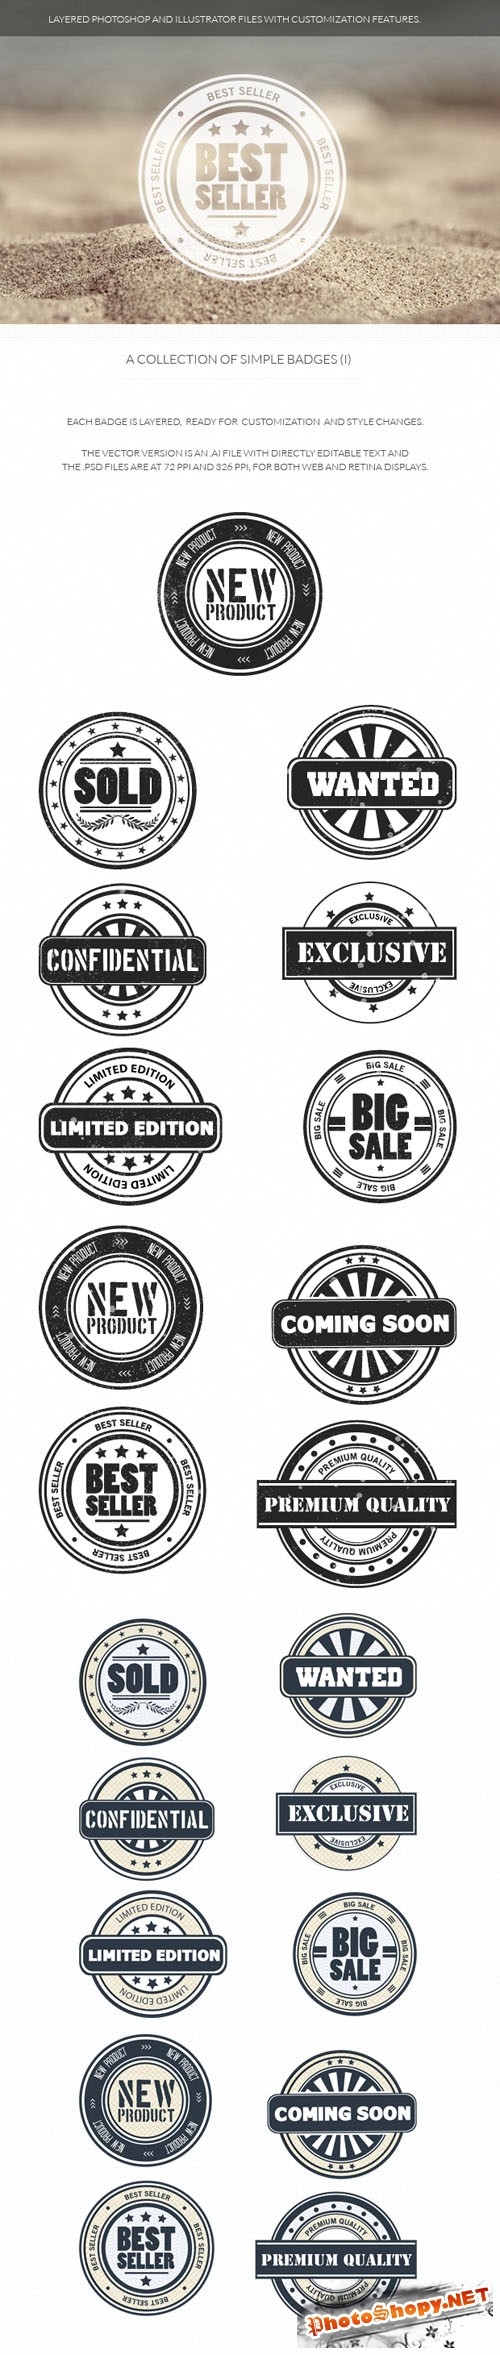 Simple Badges Vector Elements Set 1